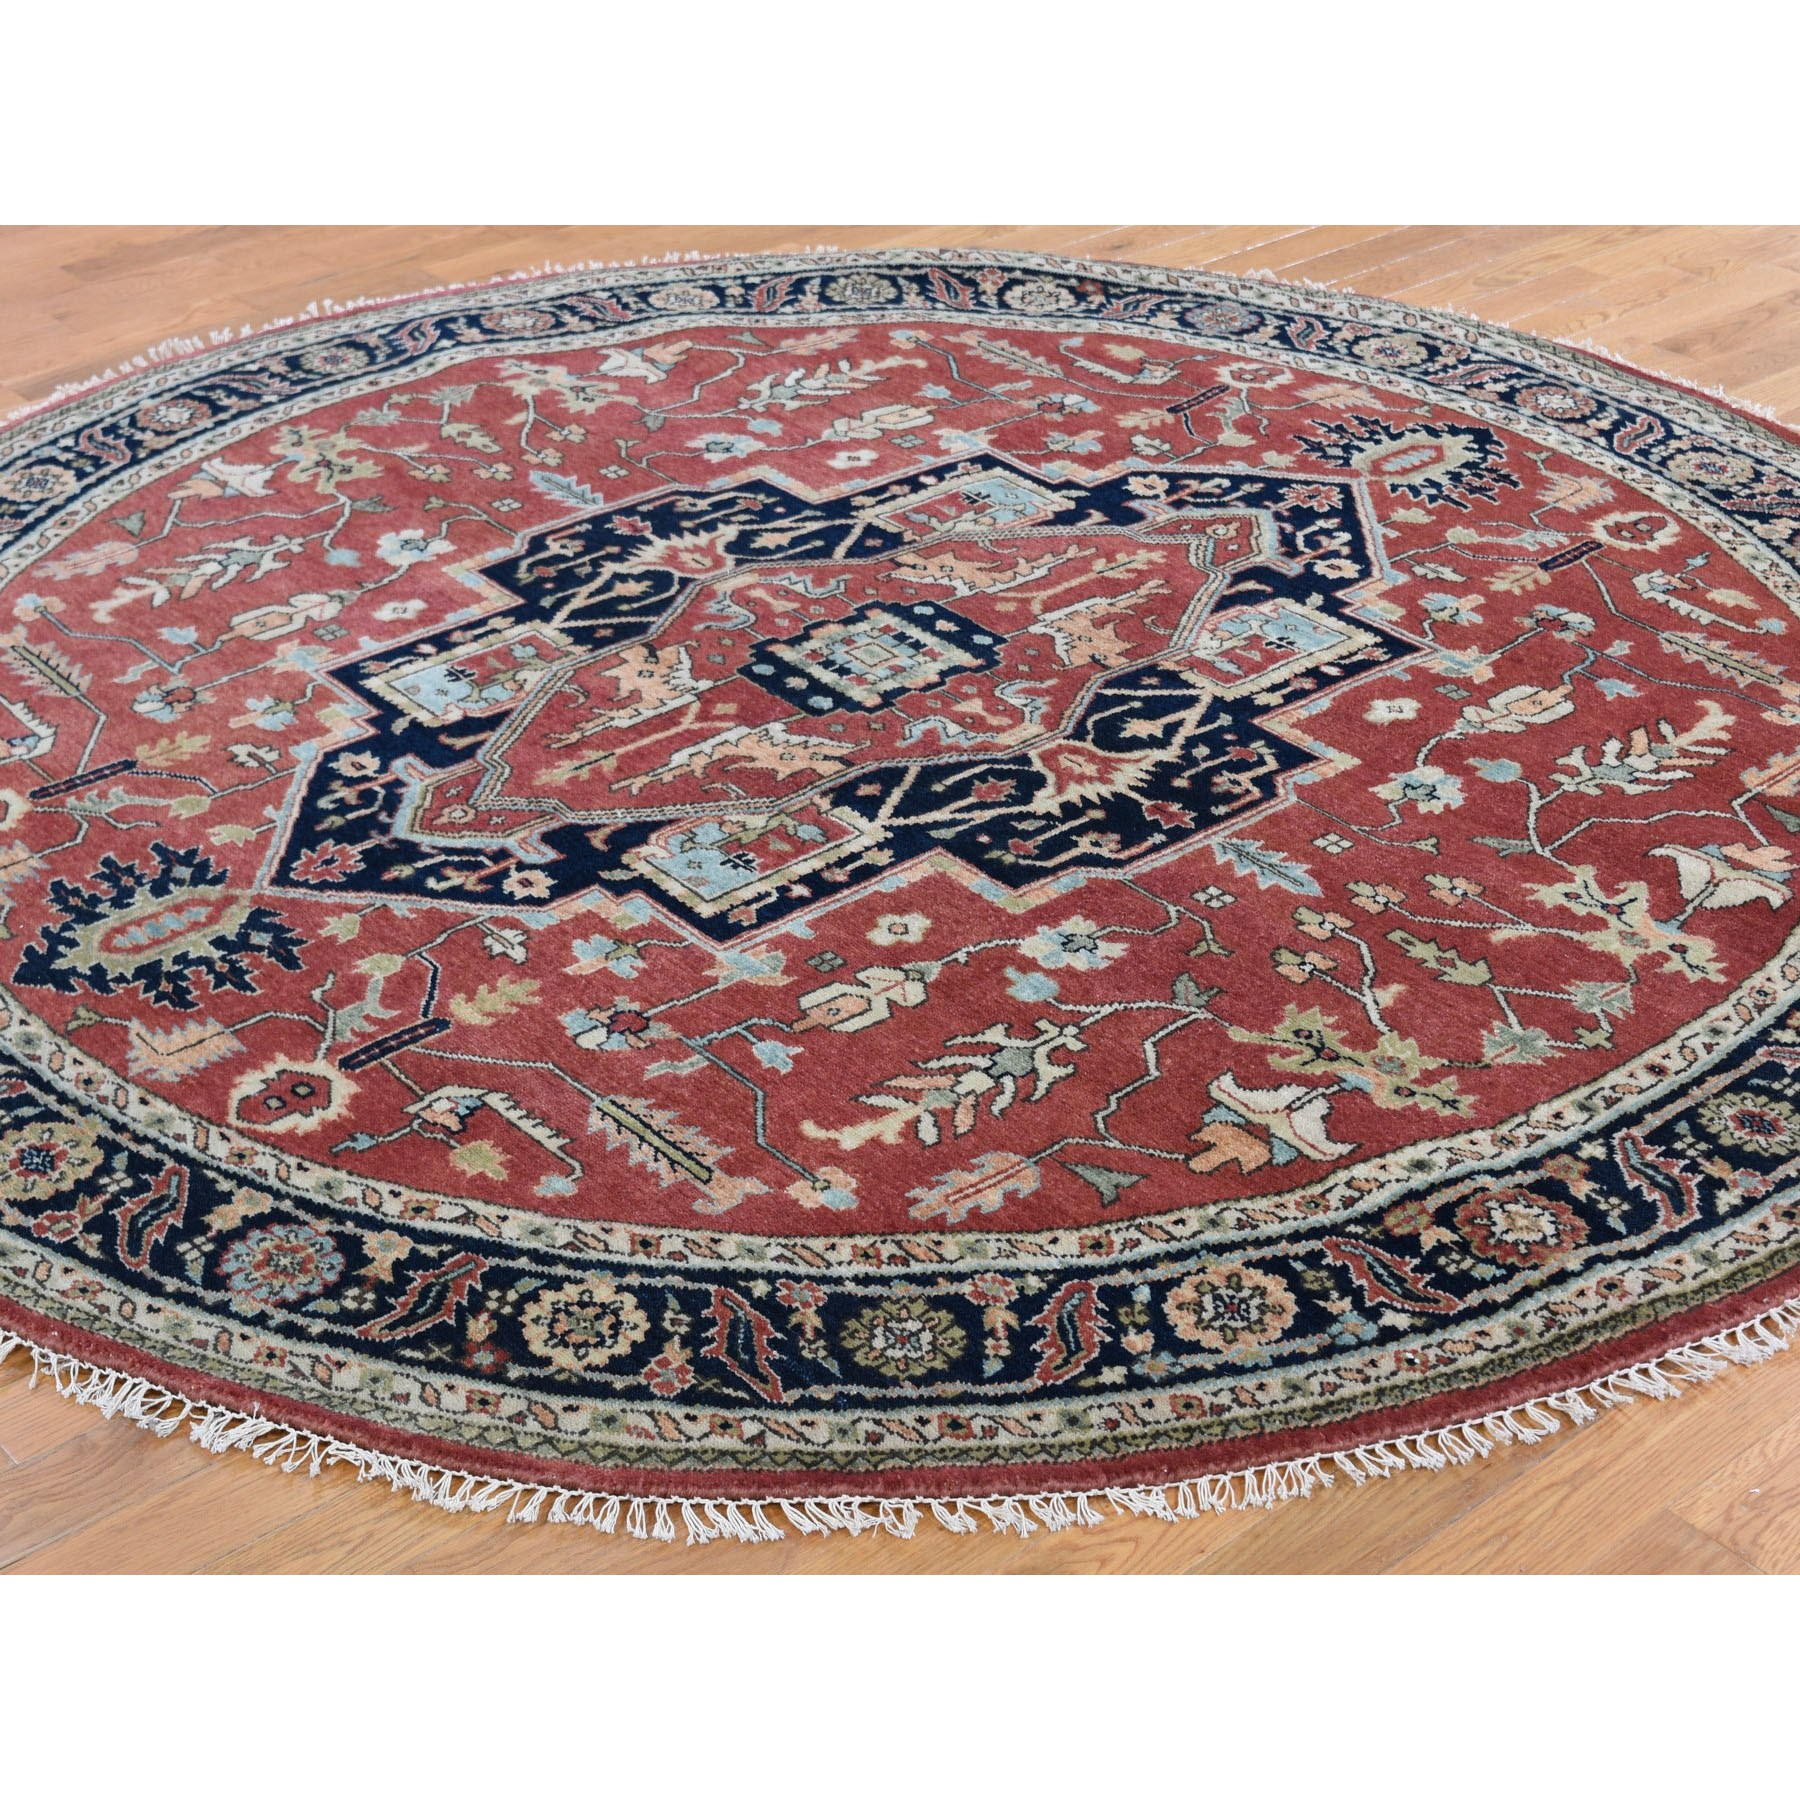 8-x8- Red Heriz Revival Pure Wool Hand Knotted Oriental Rug